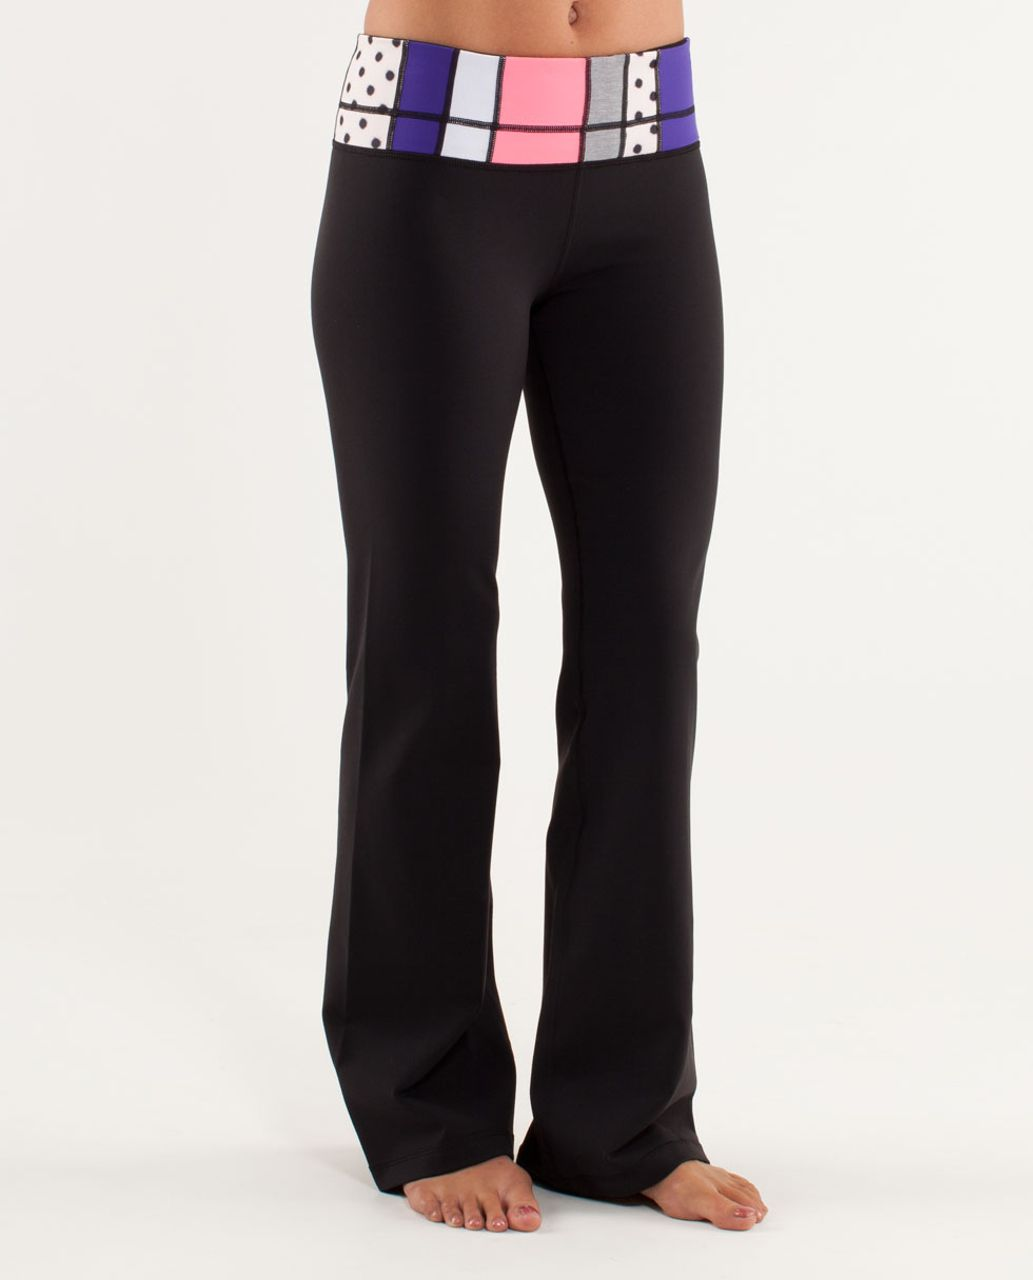 Lululemon Groove Pant (Tall) - Black / Transition Fall 12 Quilt 1